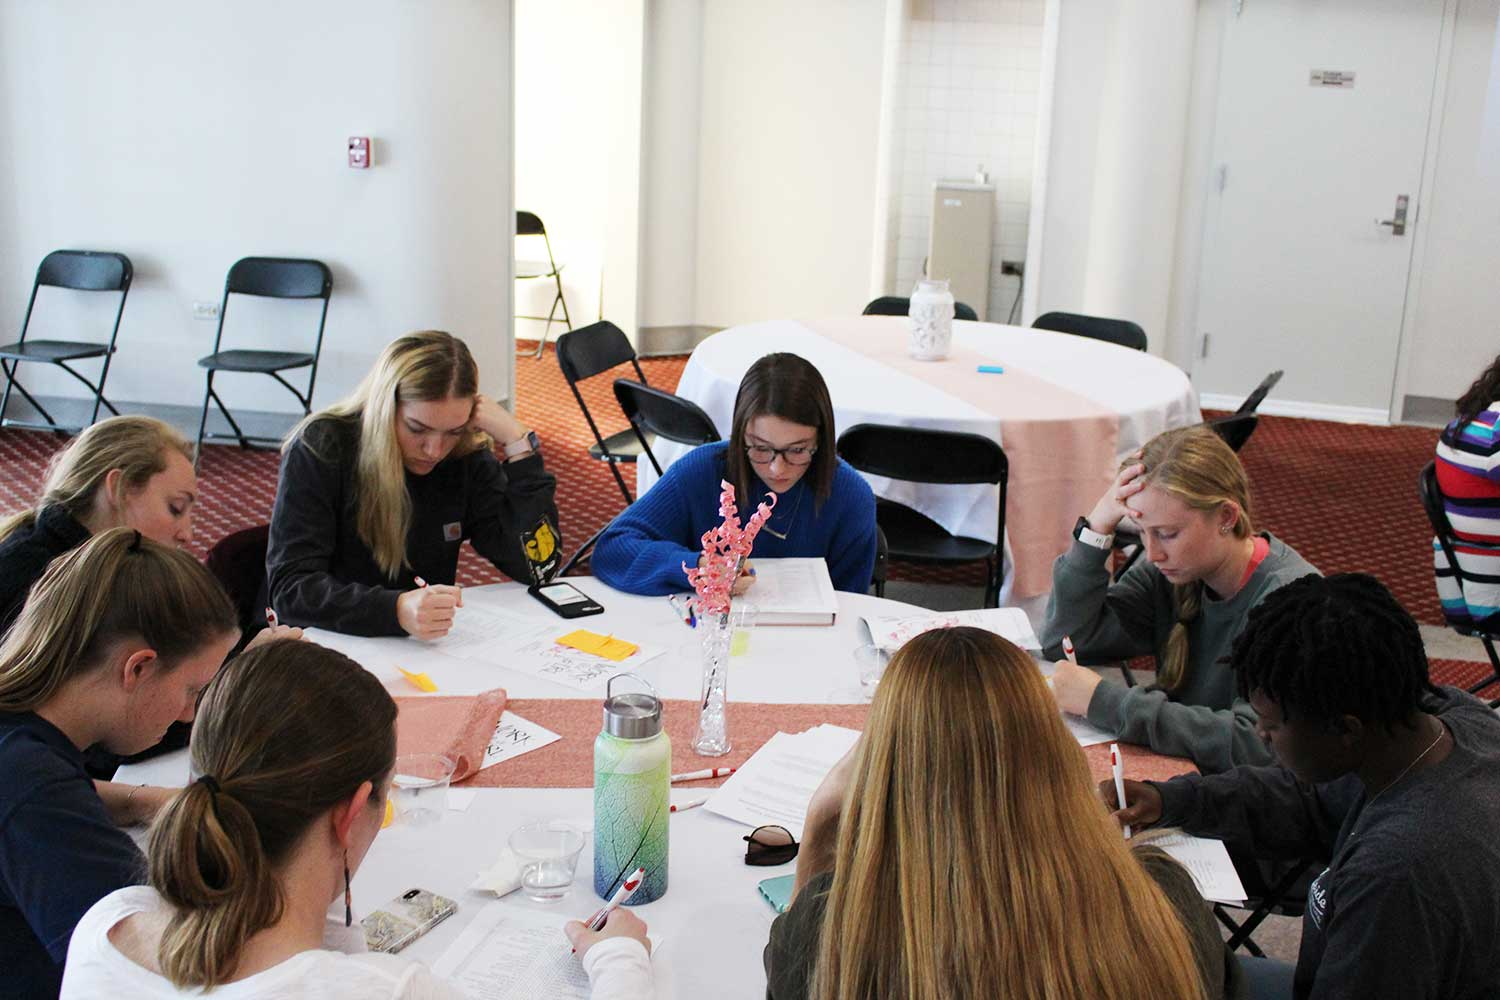 attendees at round table (8 women) work at round table with heads down, concentrating on paper with pen in hand